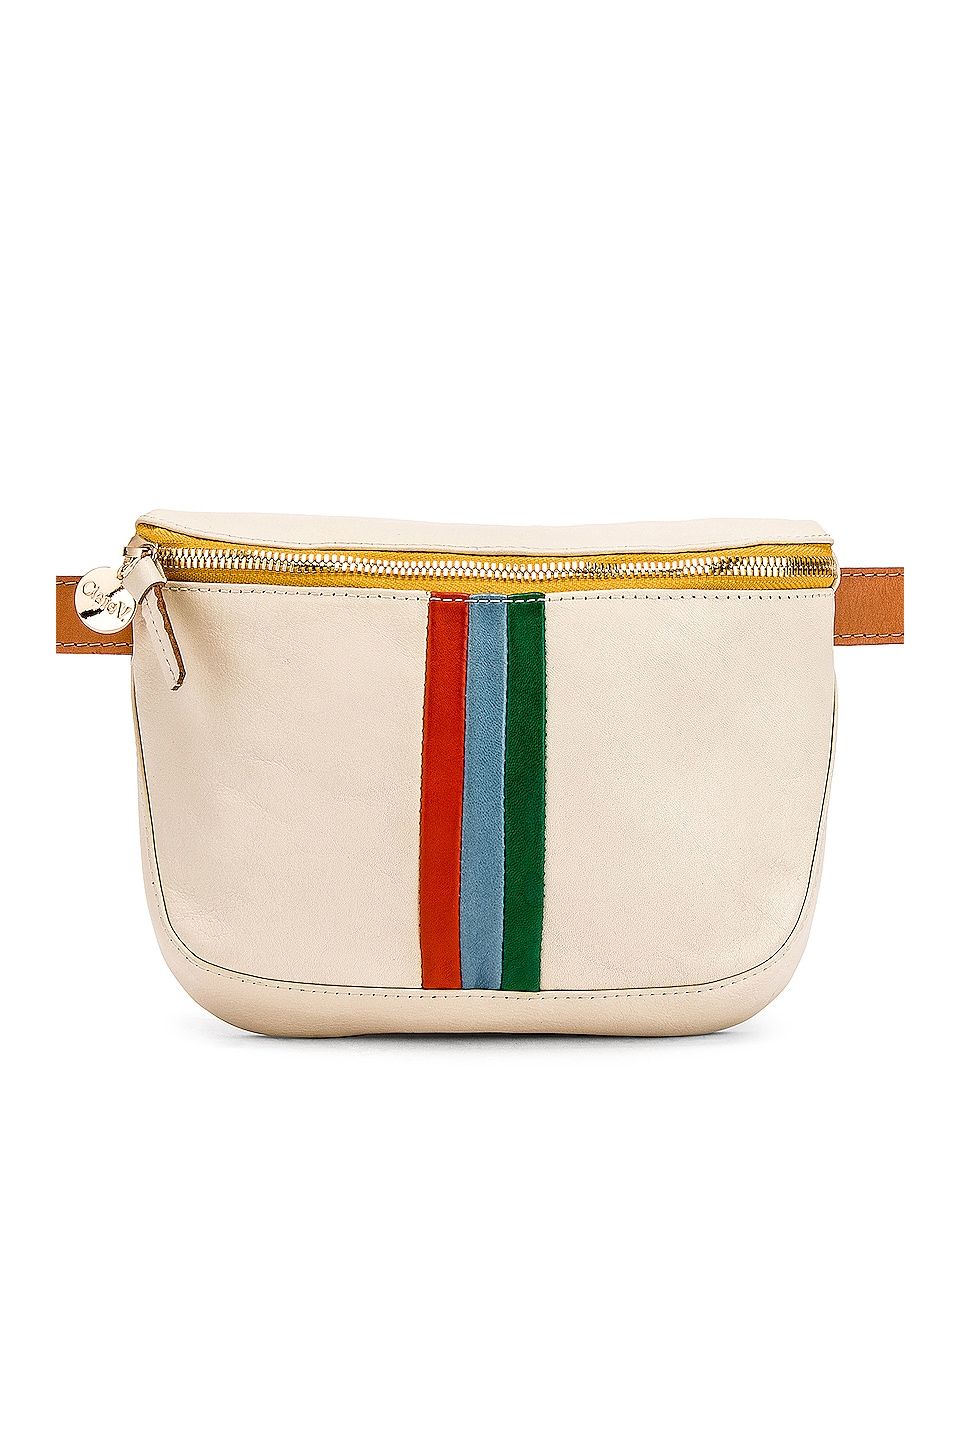 Clare V. Fanny Pack in White Rustic & Desert Stripes